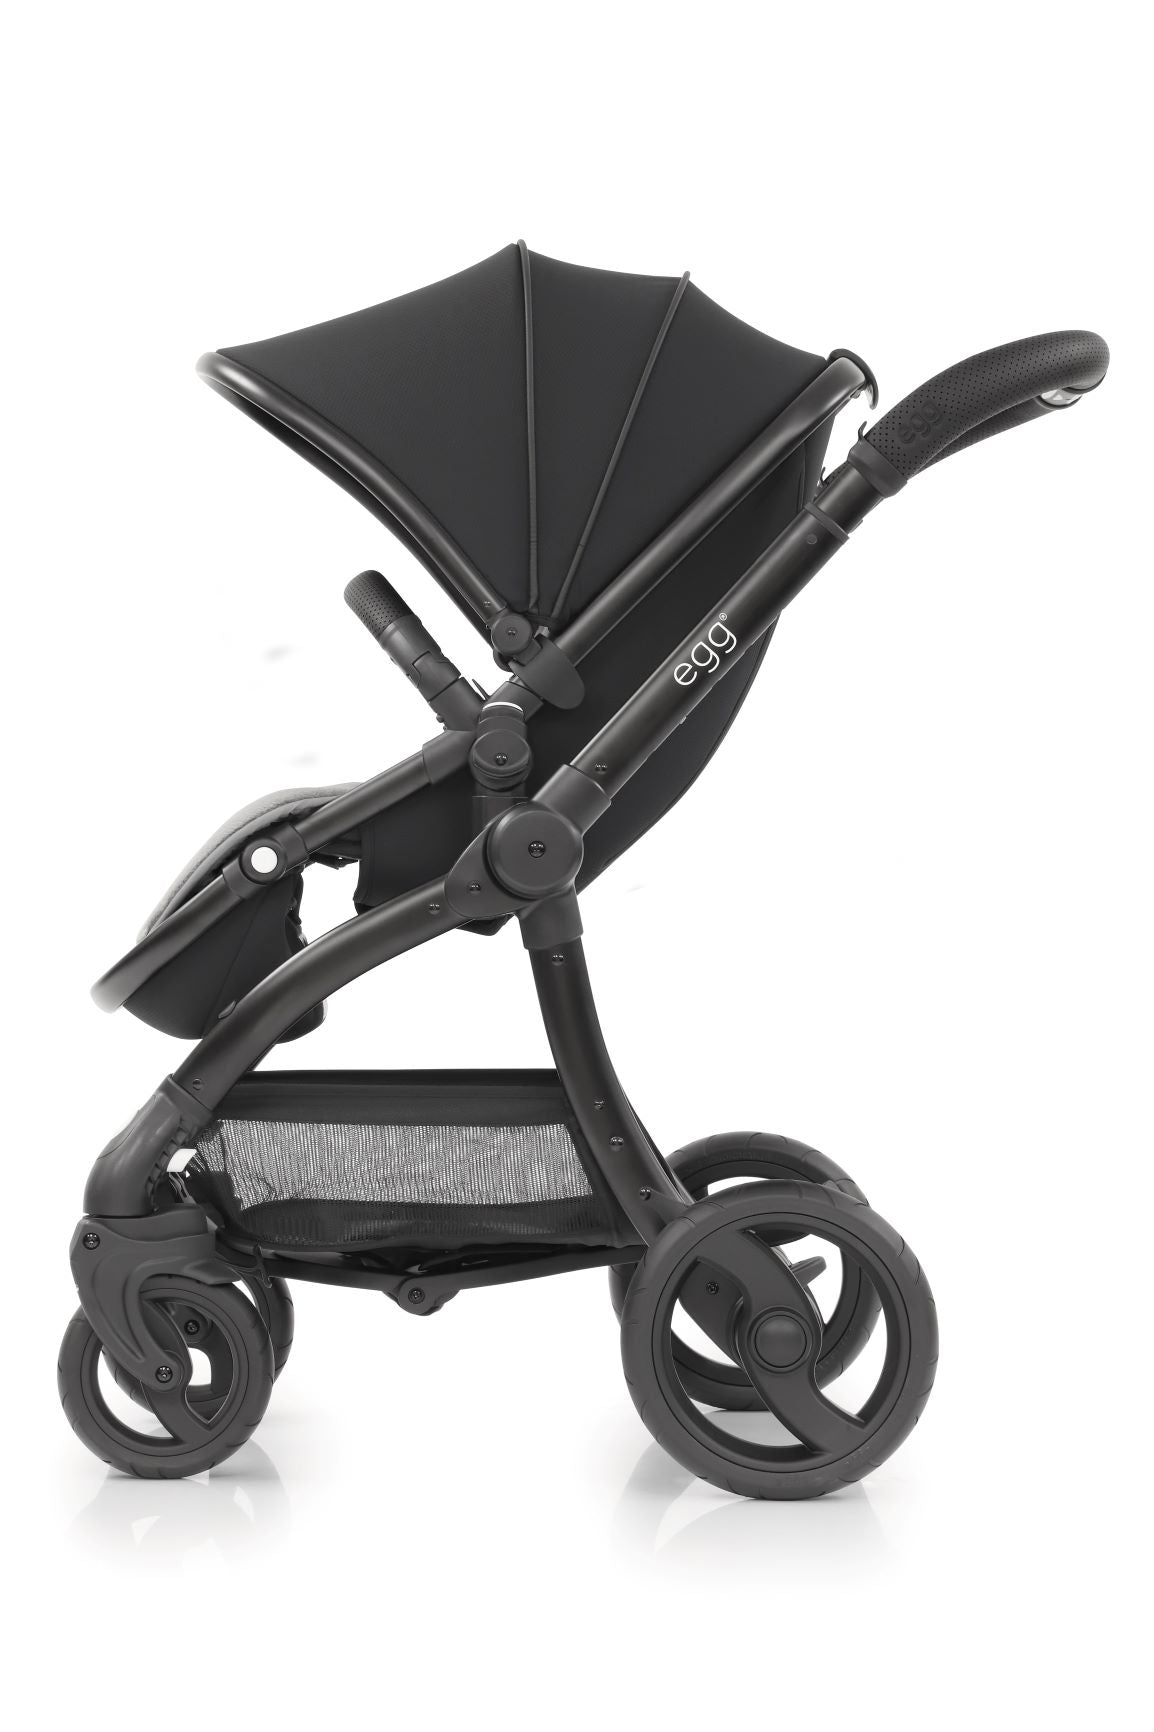 Egg special edition stroller/seat unit just black